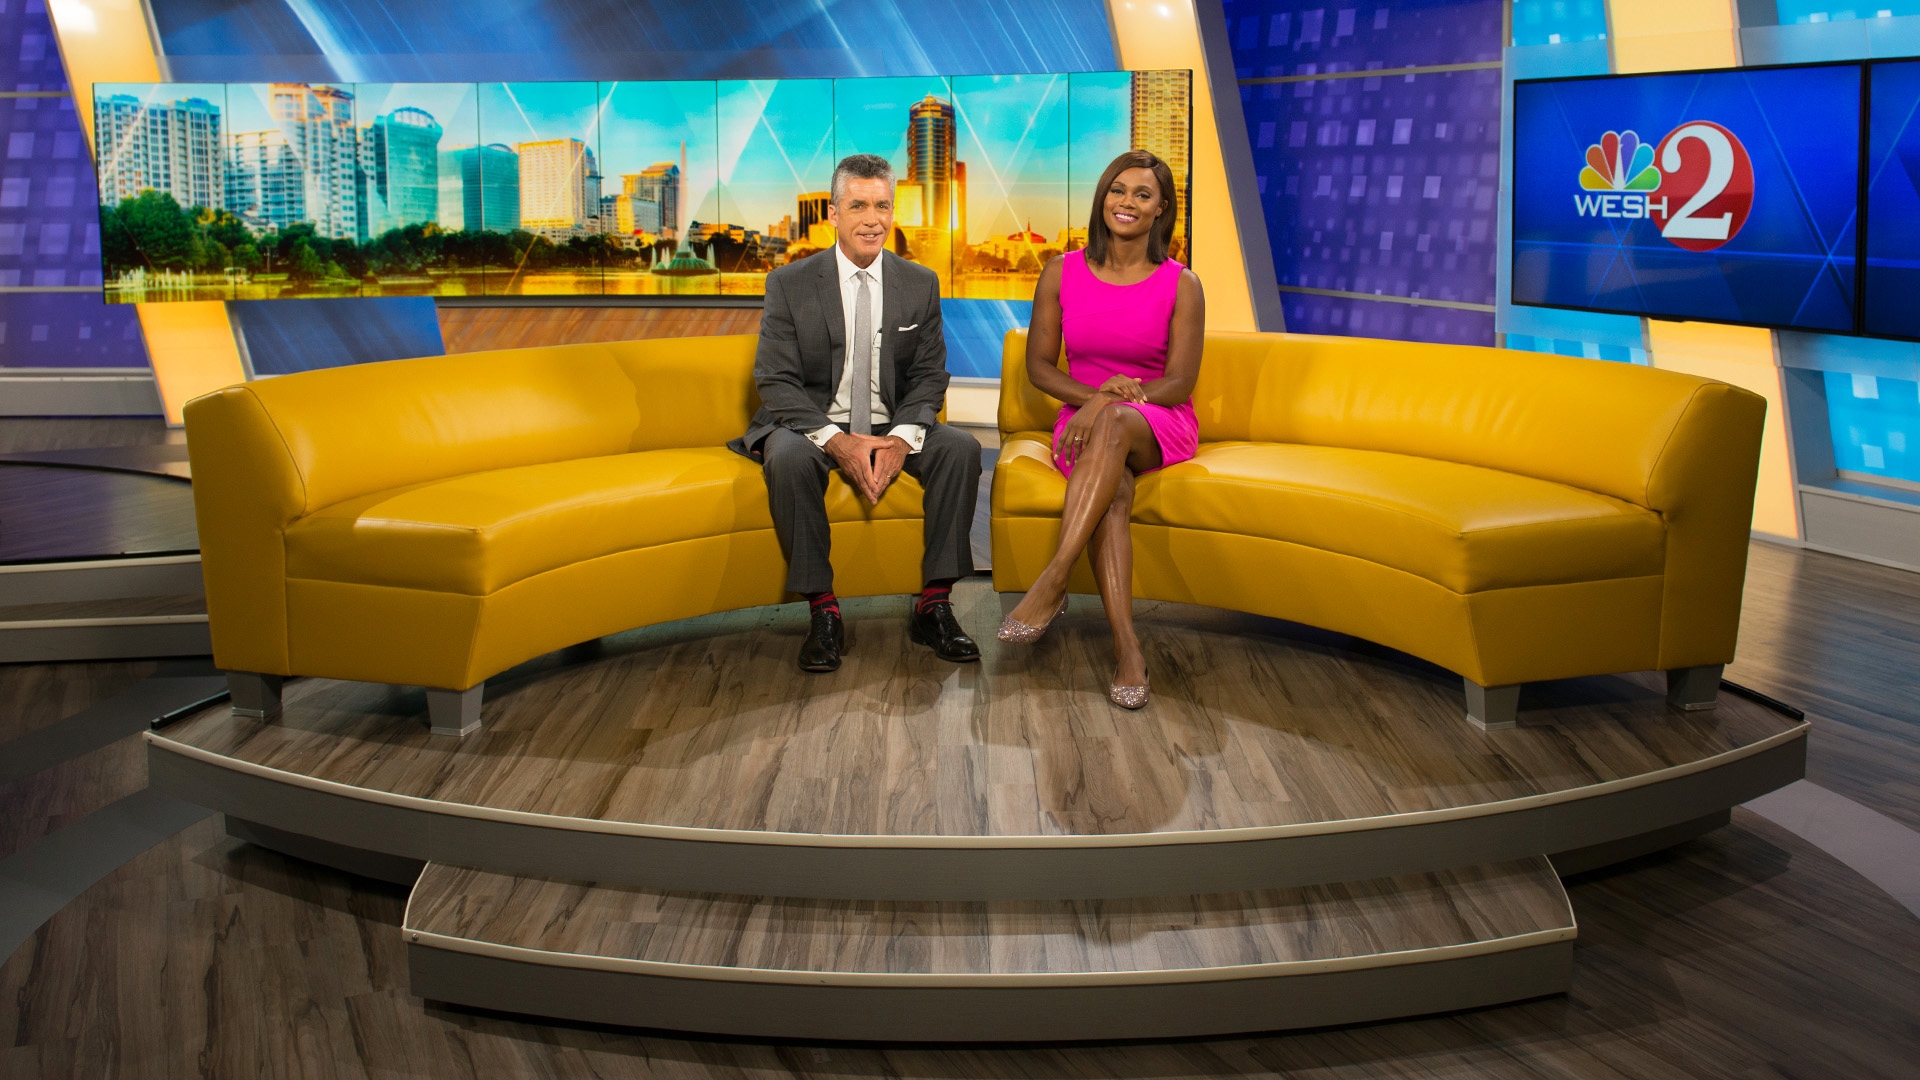 ncs_wesh-2-news-tv-studio-devlin_0009